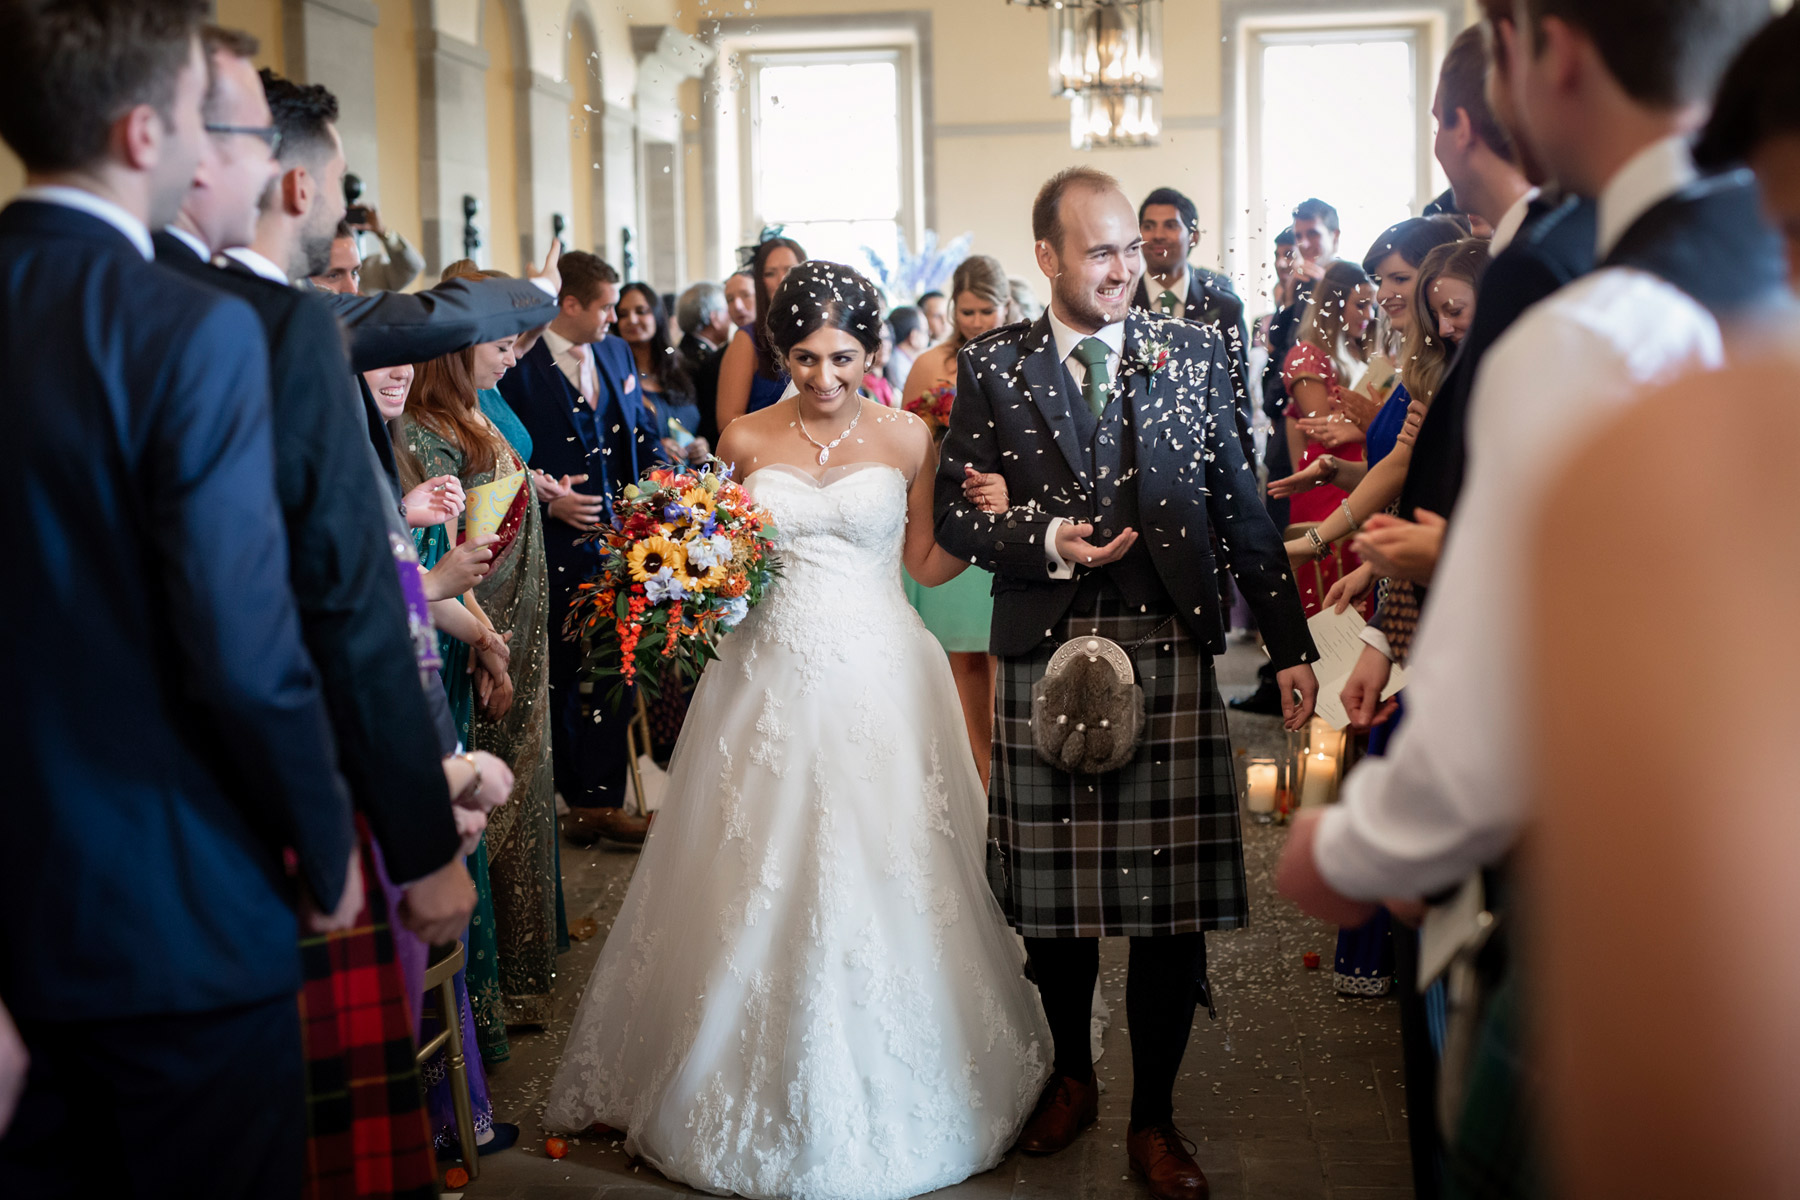 Just married at hopetoun house Scotland